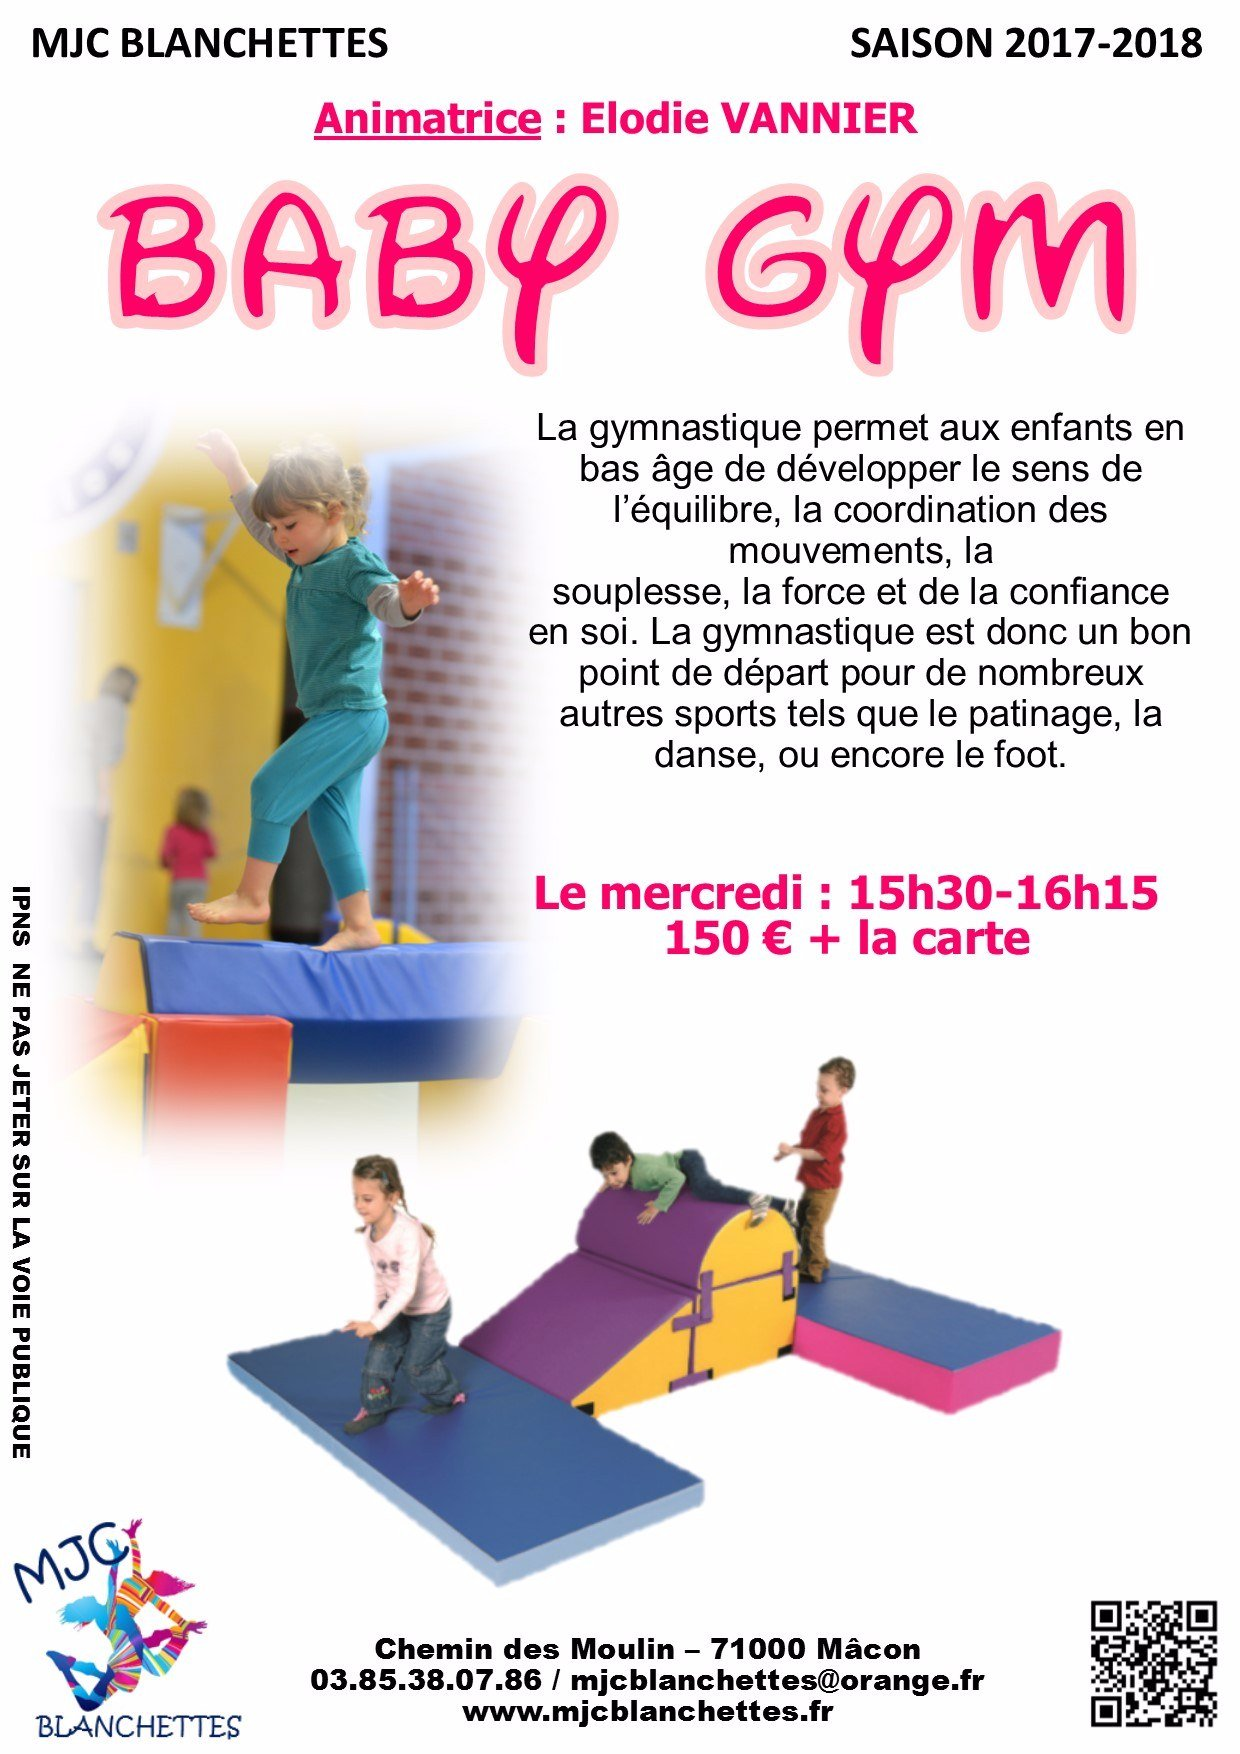 Baby gym mercredi